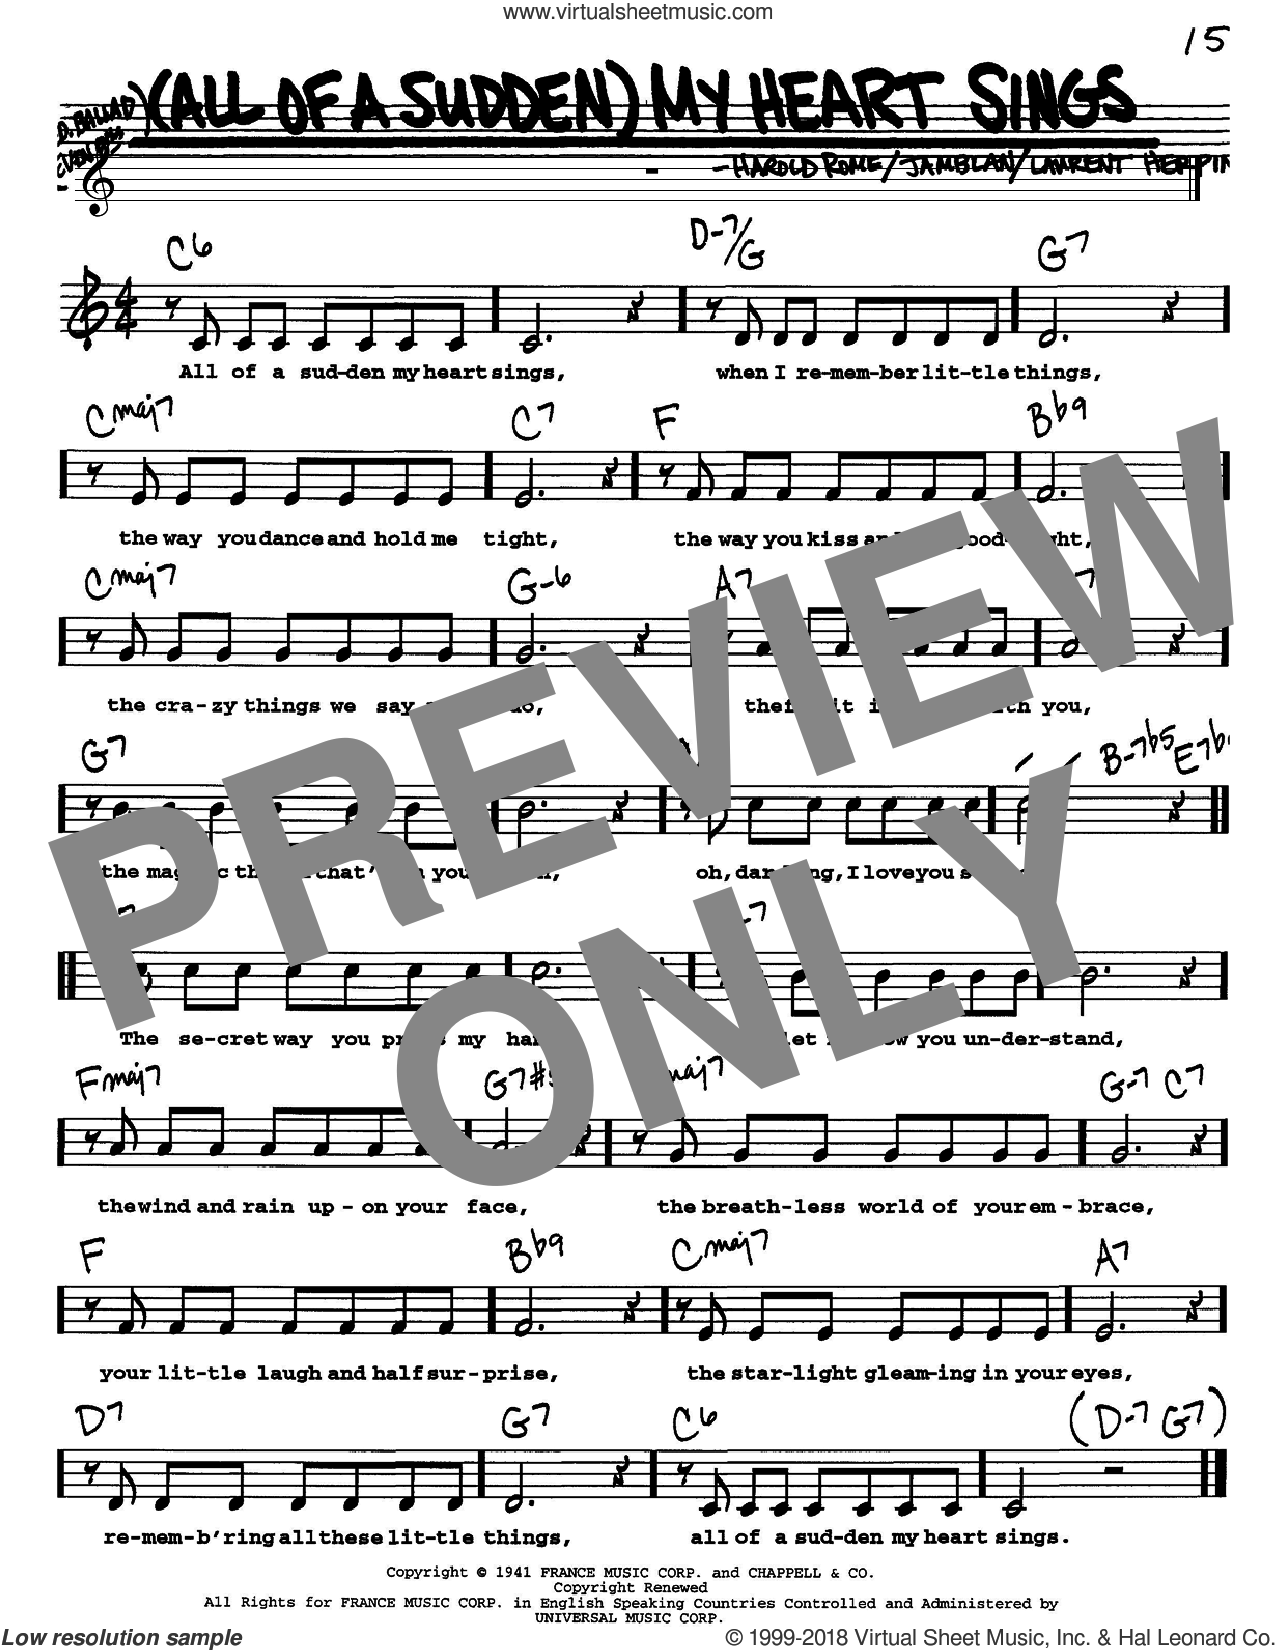 (All Of A Sudden) My Heart Sings sheet music for voice and other instruments (Vocal Volume 1) by Laurent Herpin, Paul Anka and Harold Rome. Score Image Preview.